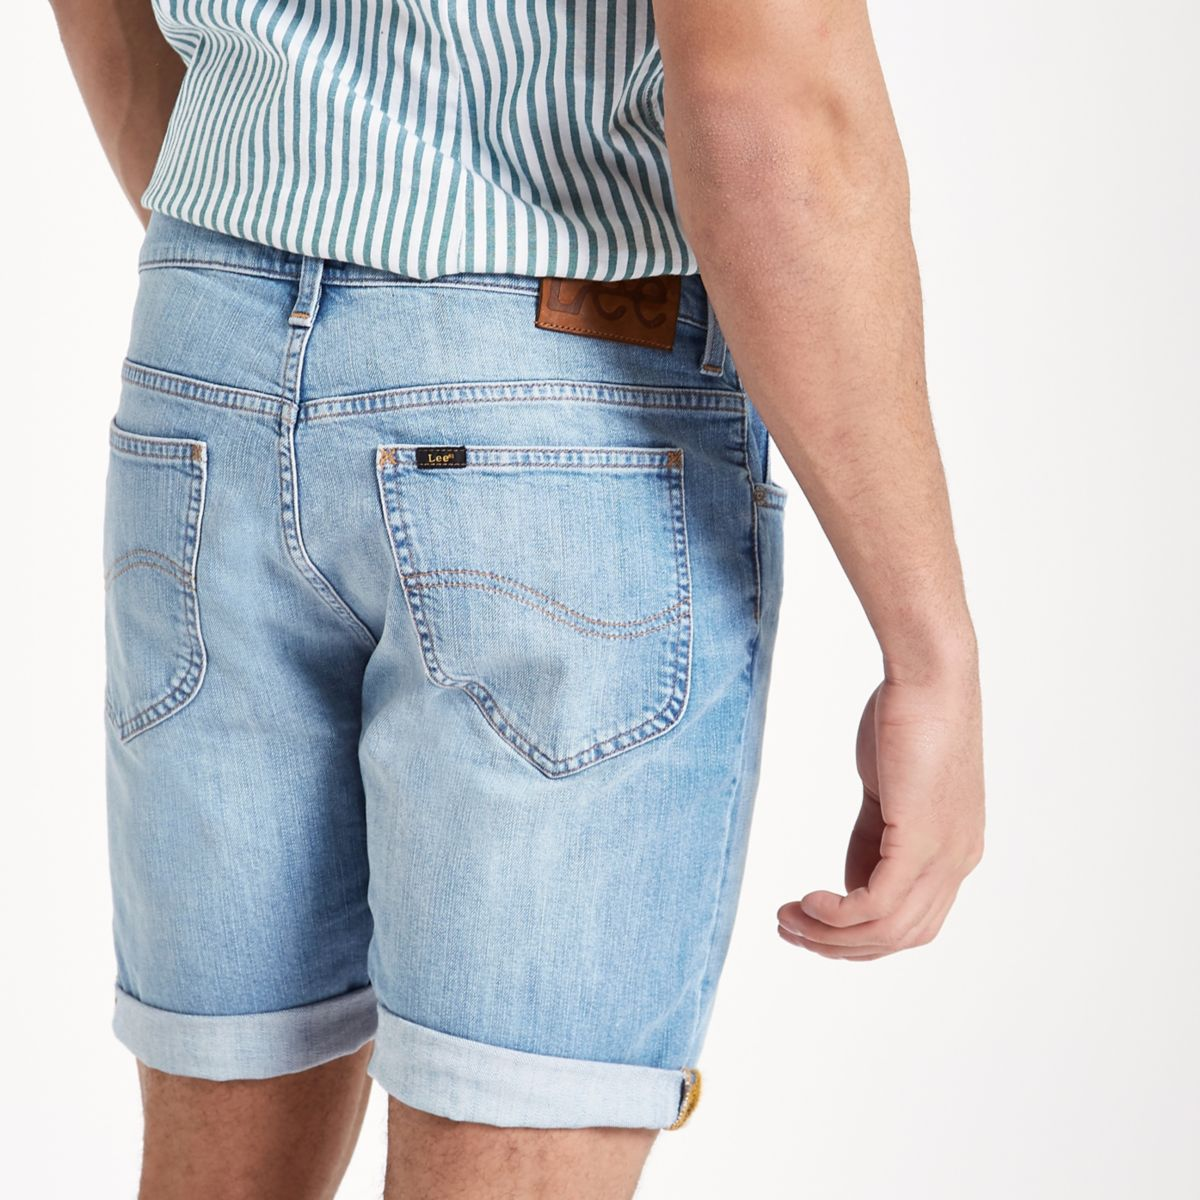 hem Lee denim shorts rolled light blue qTRYTta